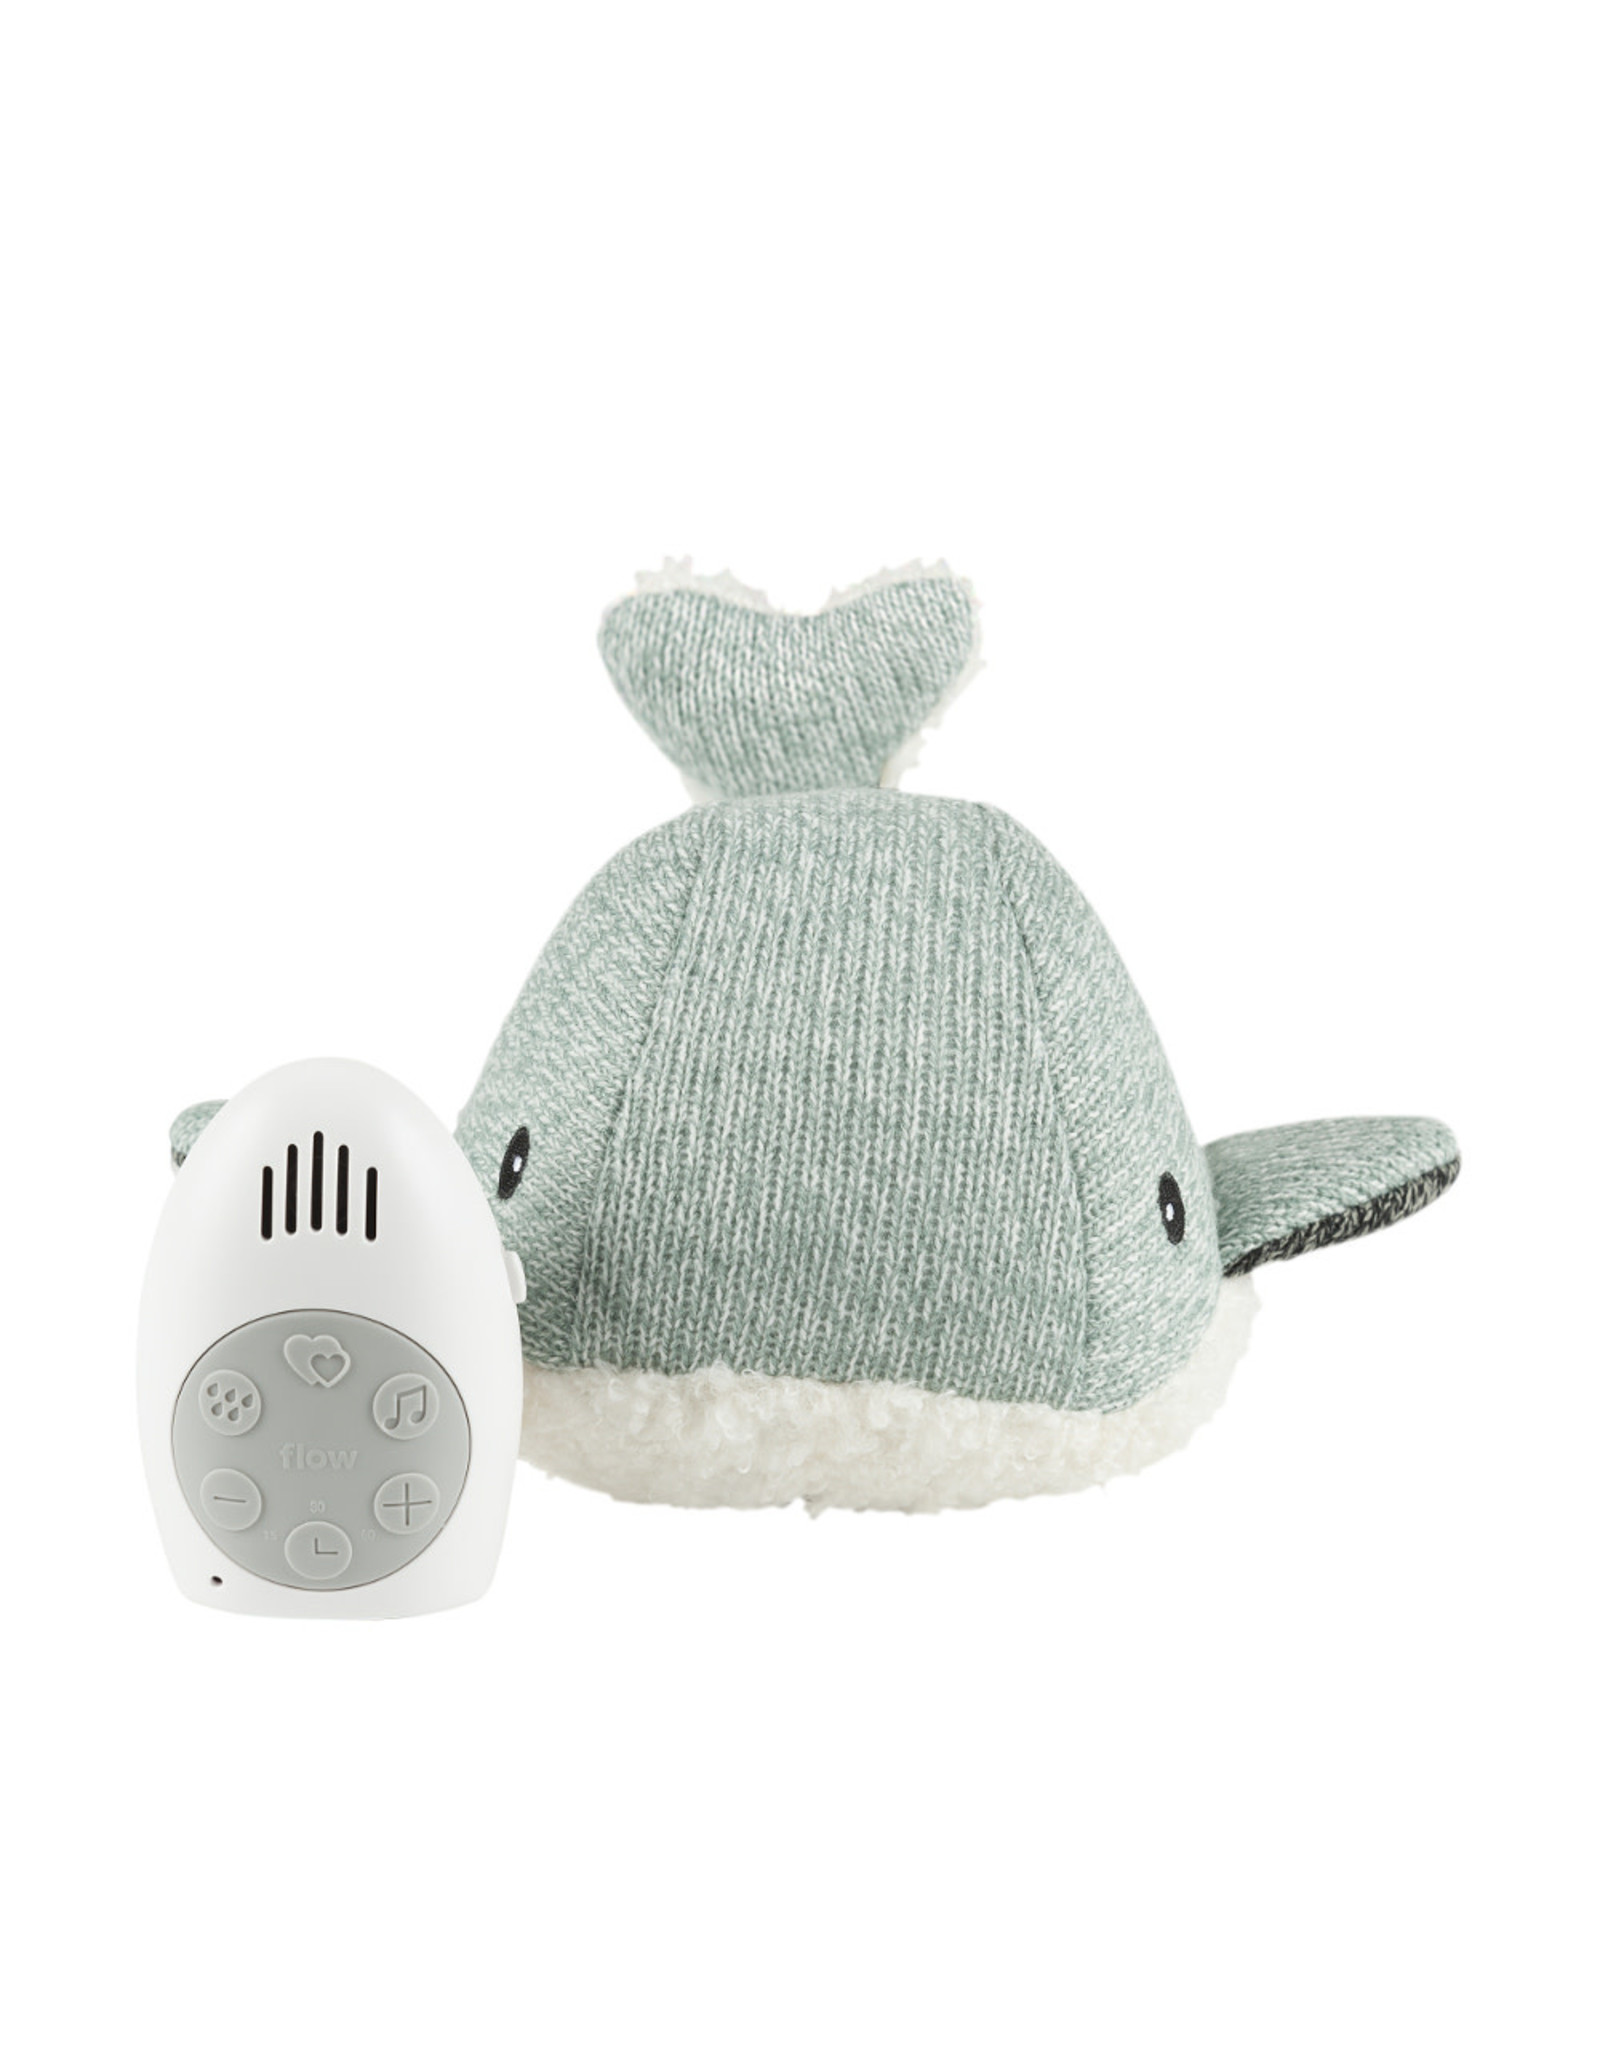 Flow Flow Heartbeat Comforter - Moby the Whale - Green